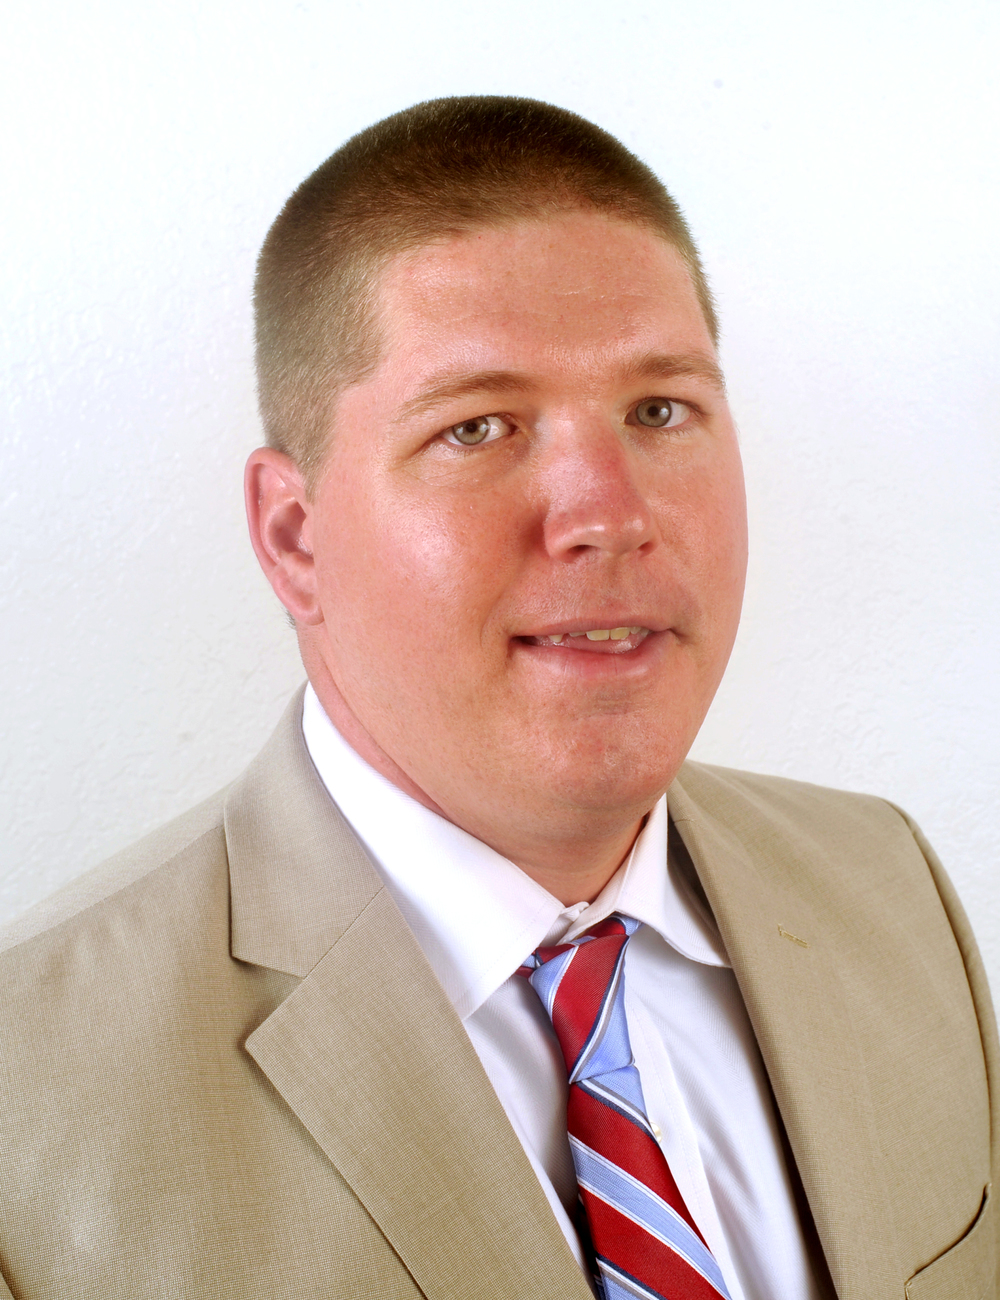 JUSTIN GATES - BARNETT & HILL REAL ESTATE - ABILENE, TX